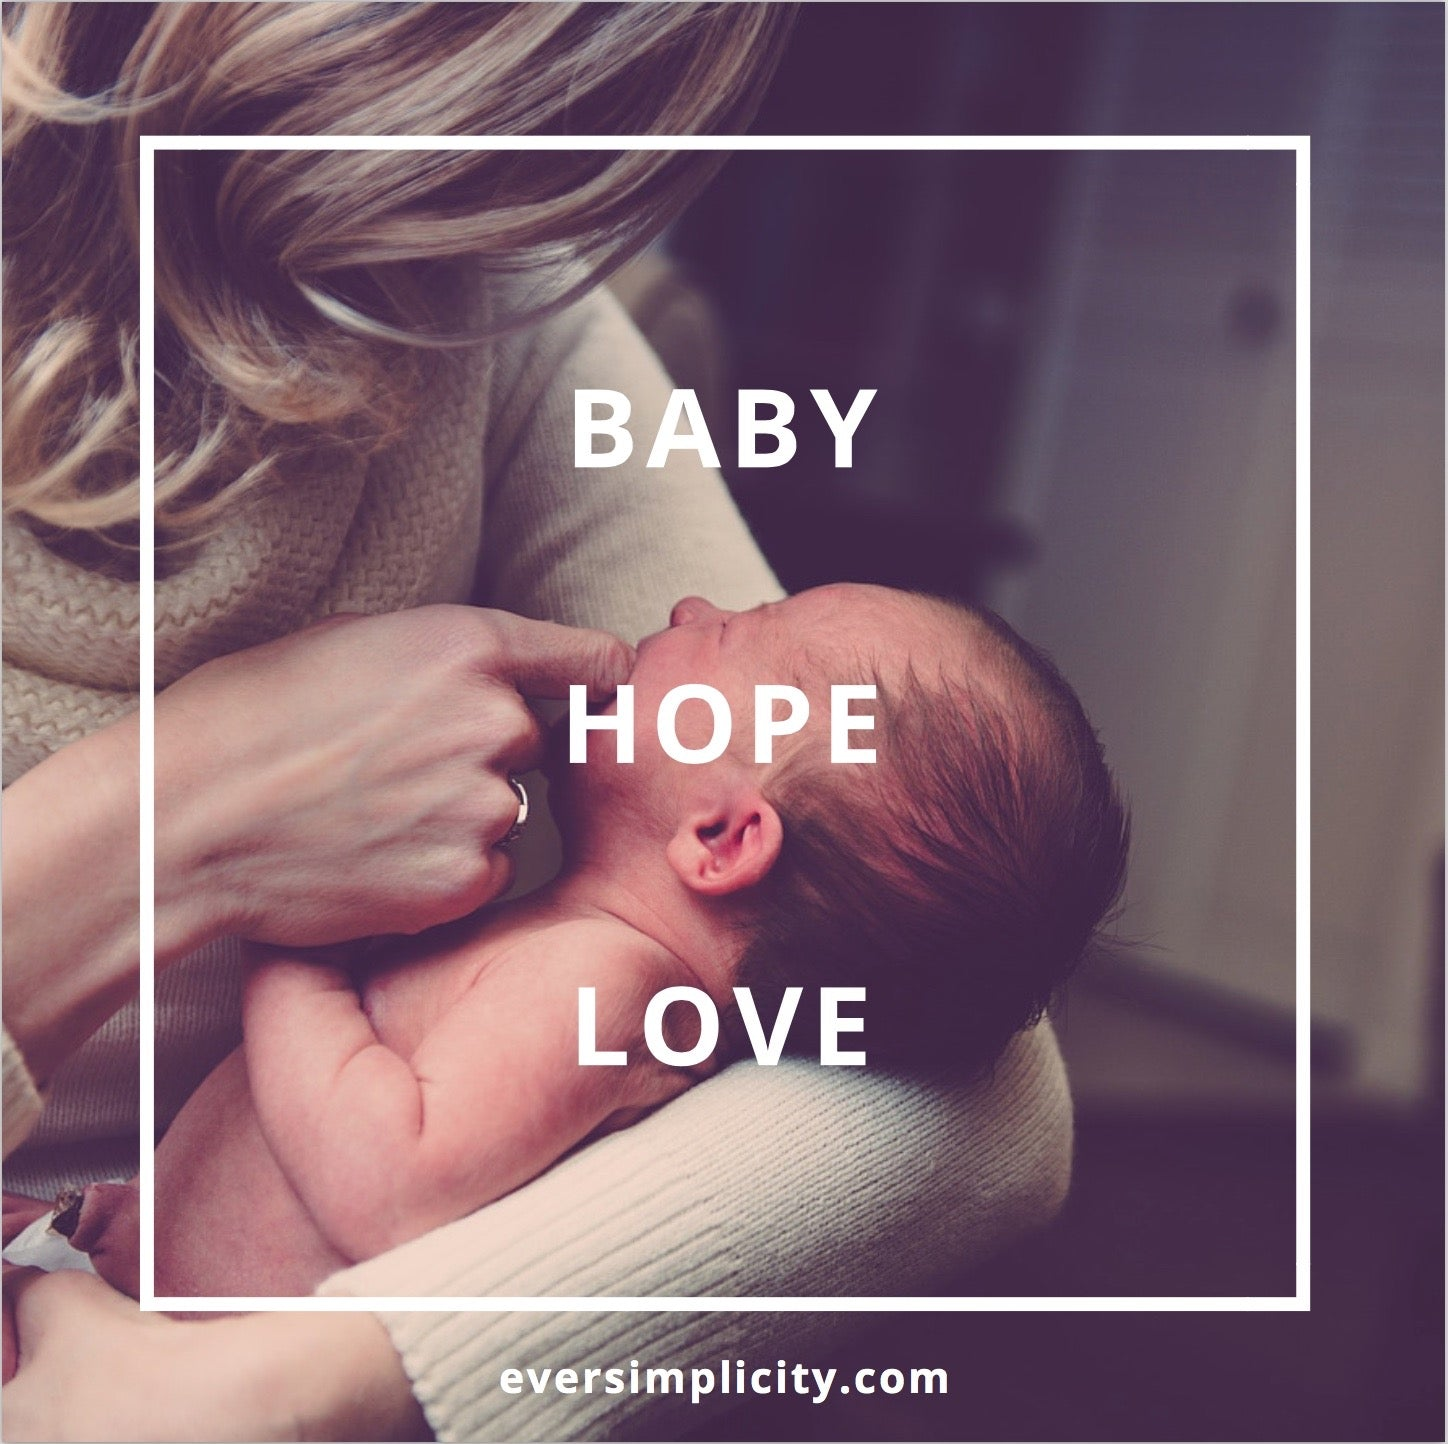 baby hope love-Ever Simplicity